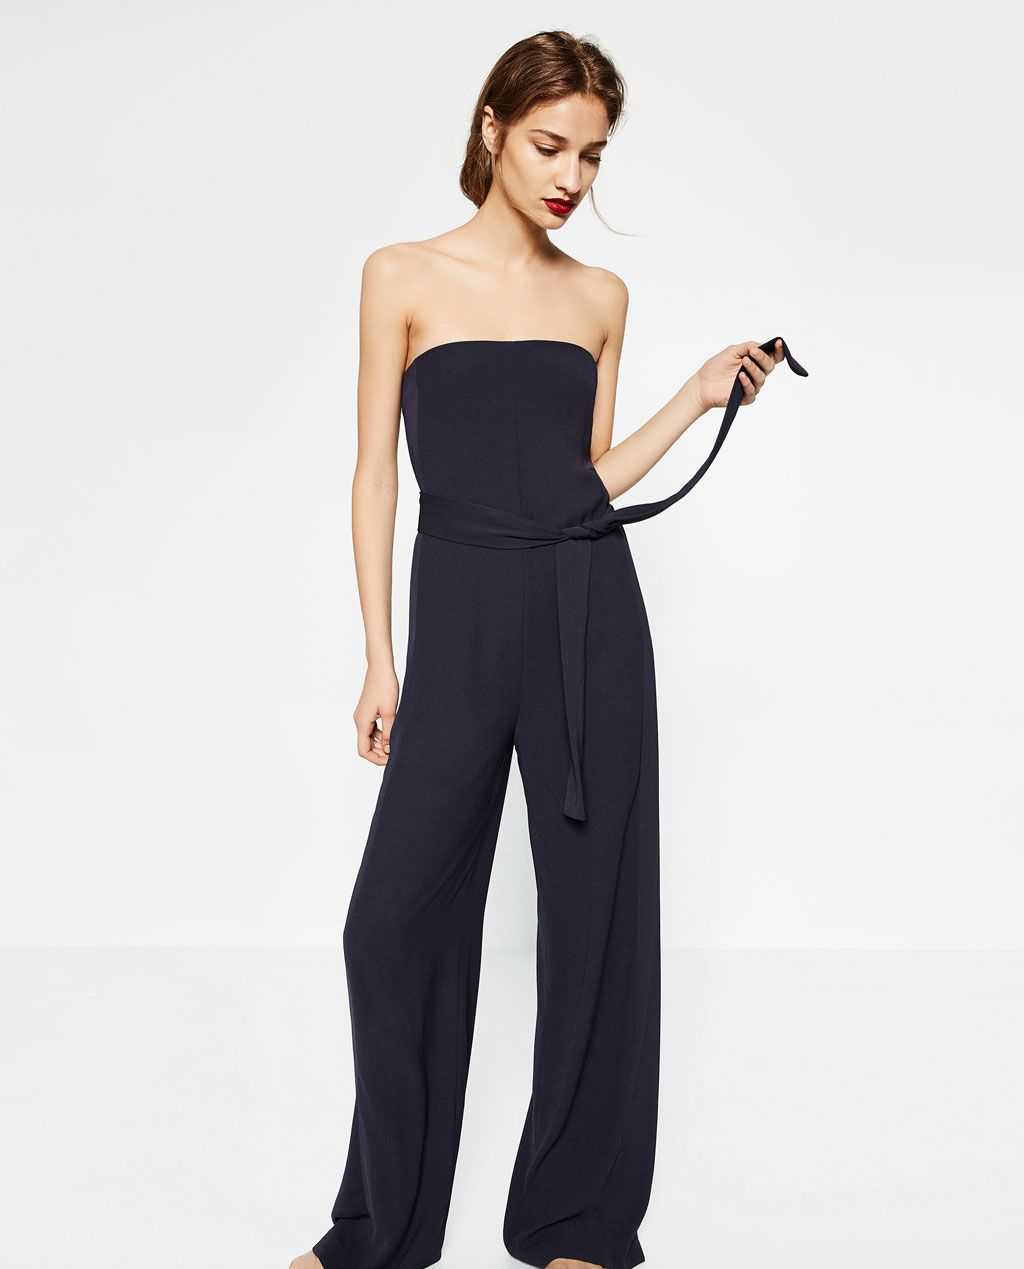 STRAPLESS JUMPSUIT-JUMPSUITS-WOMAN-COLLECTION AW16 | ZARA United ...